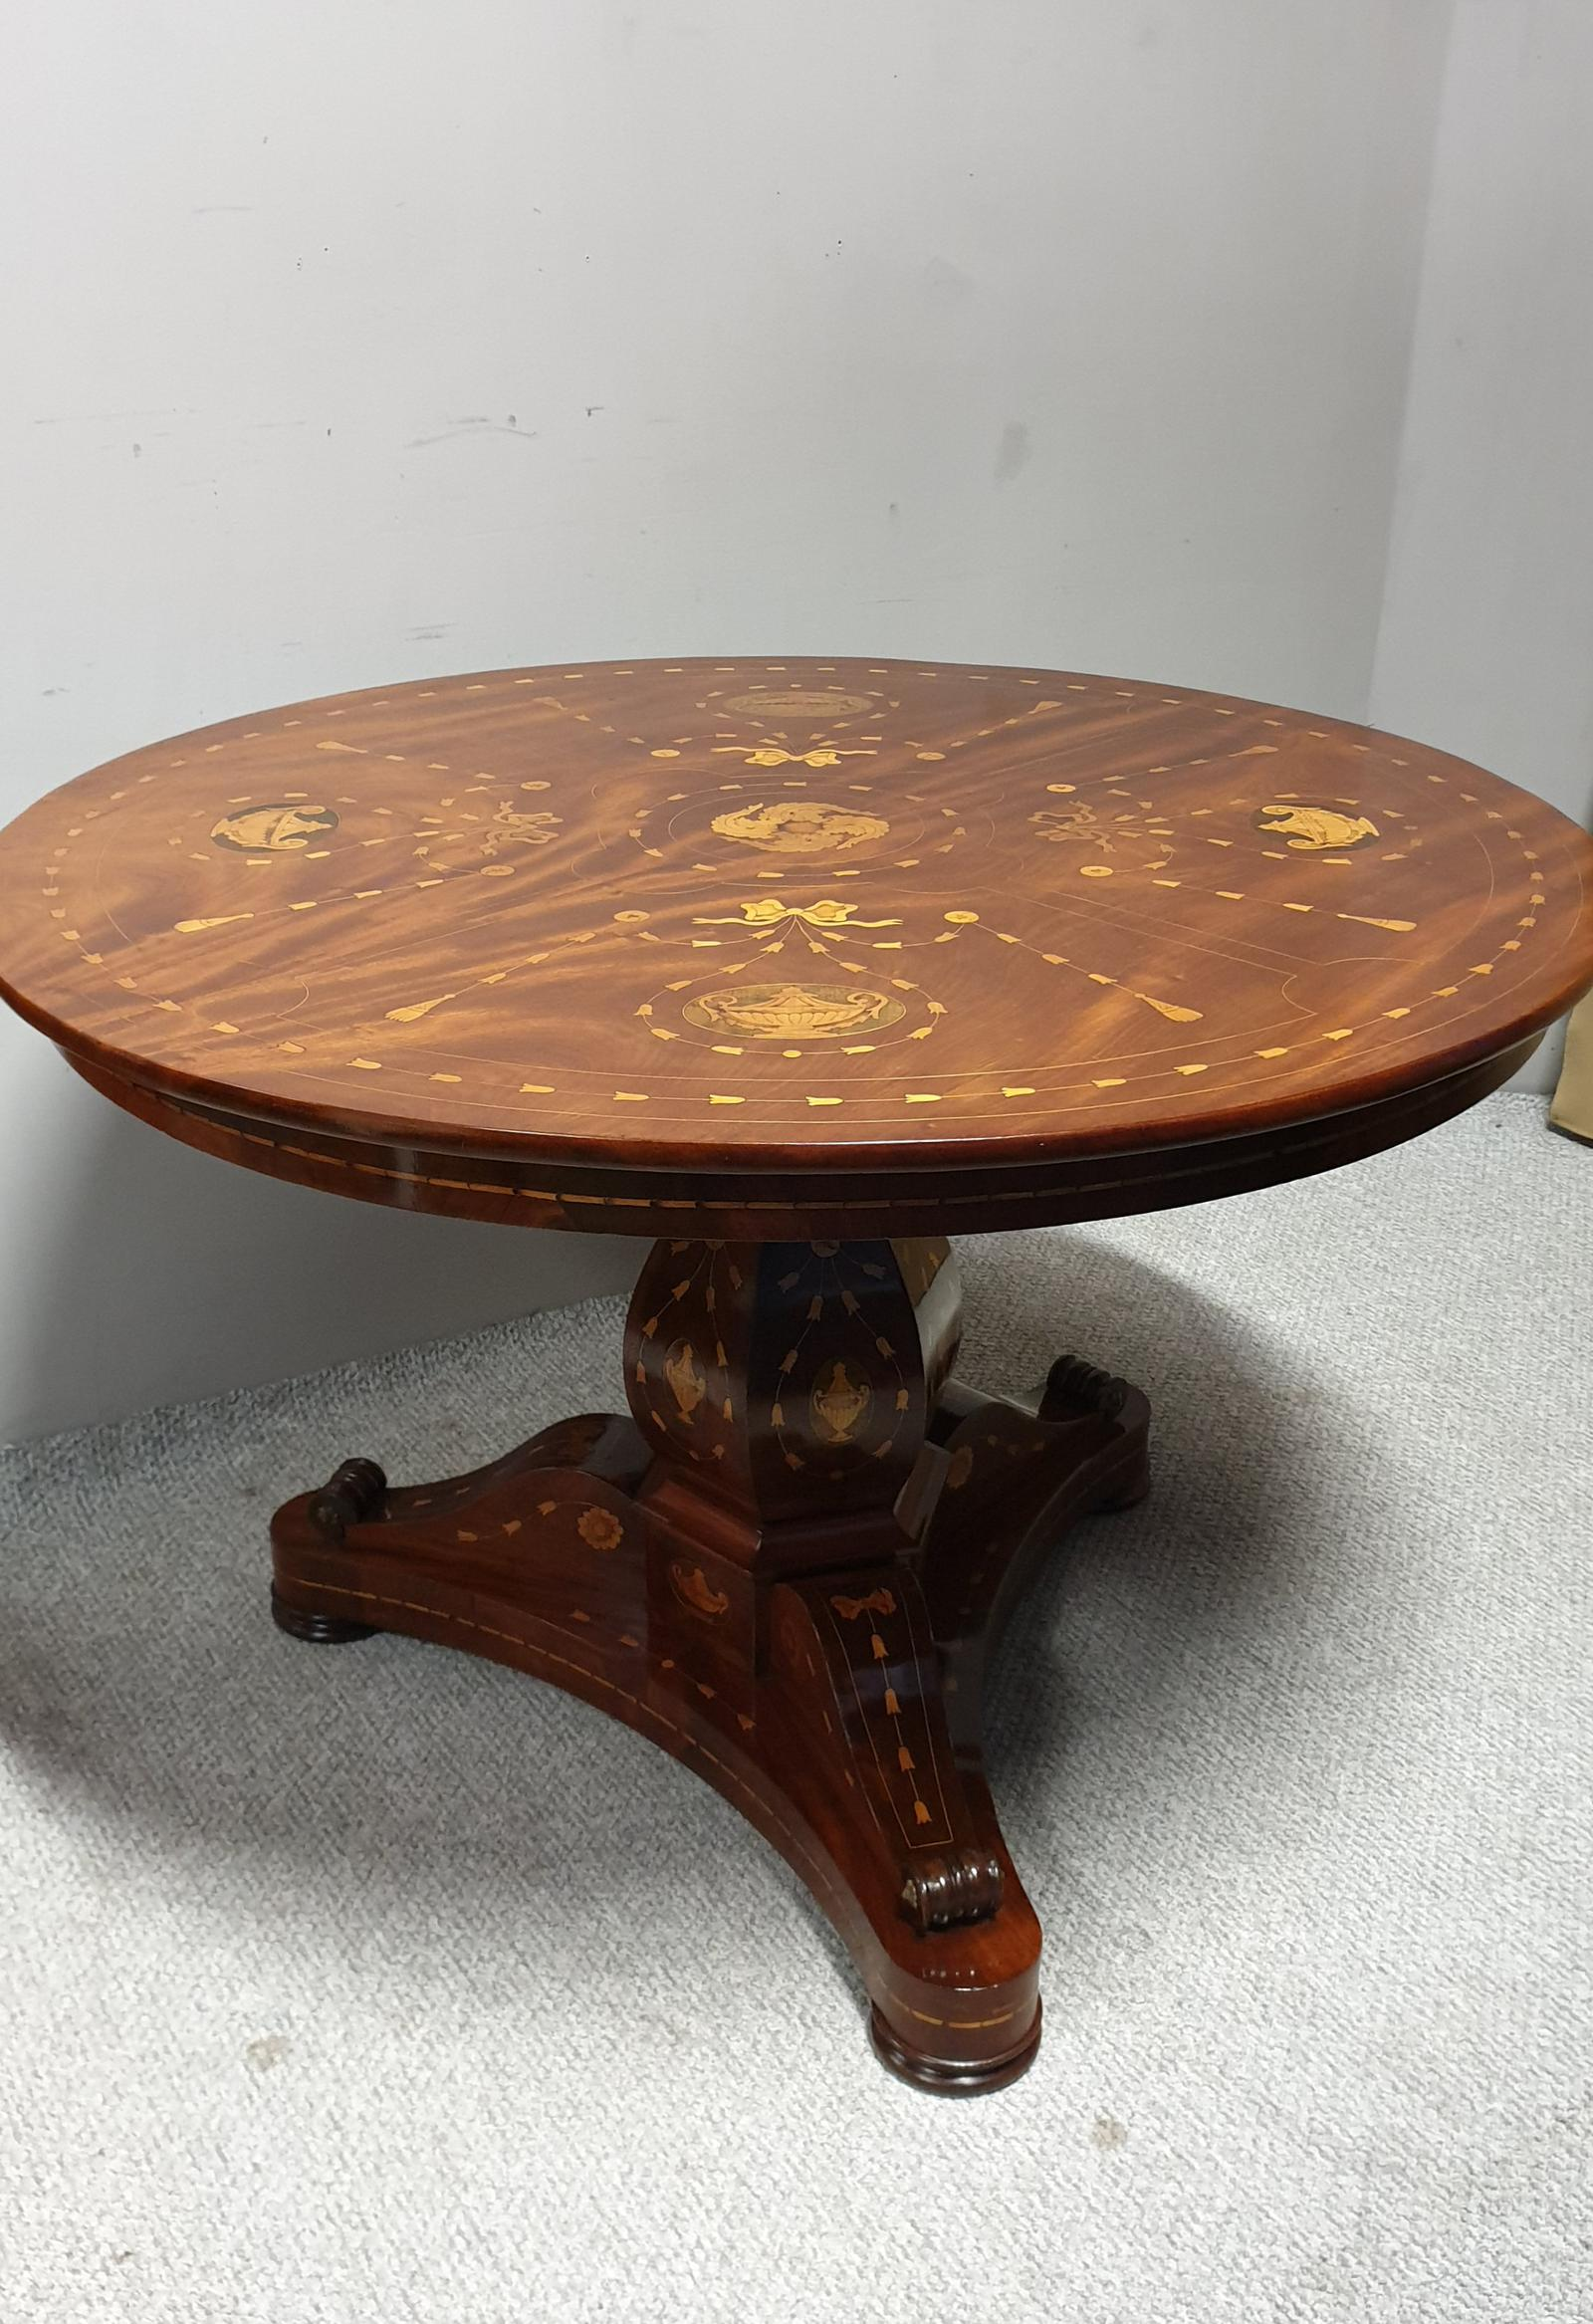 Superb French Marquetry Center Dining Table (1 of 1)